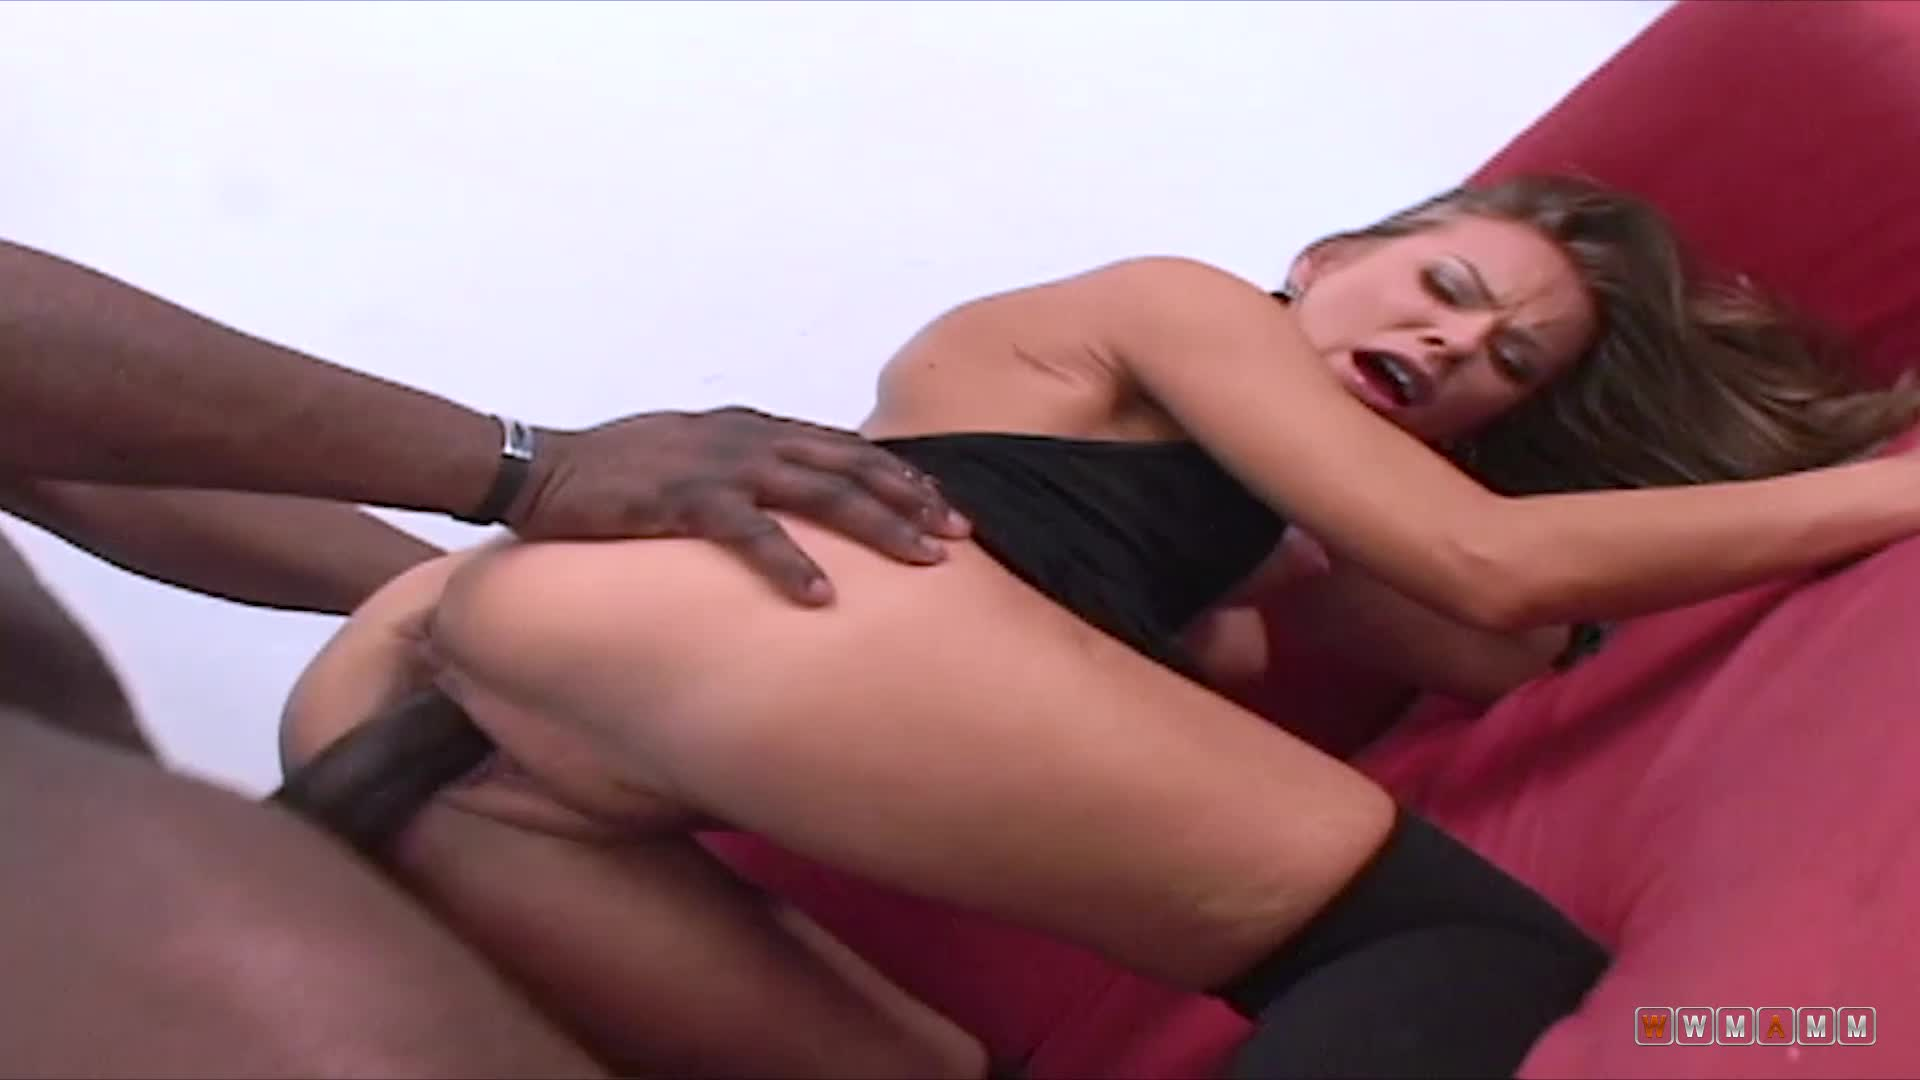 Lisa Is Trying To Tease And Get That Black Cock Up With Her Show